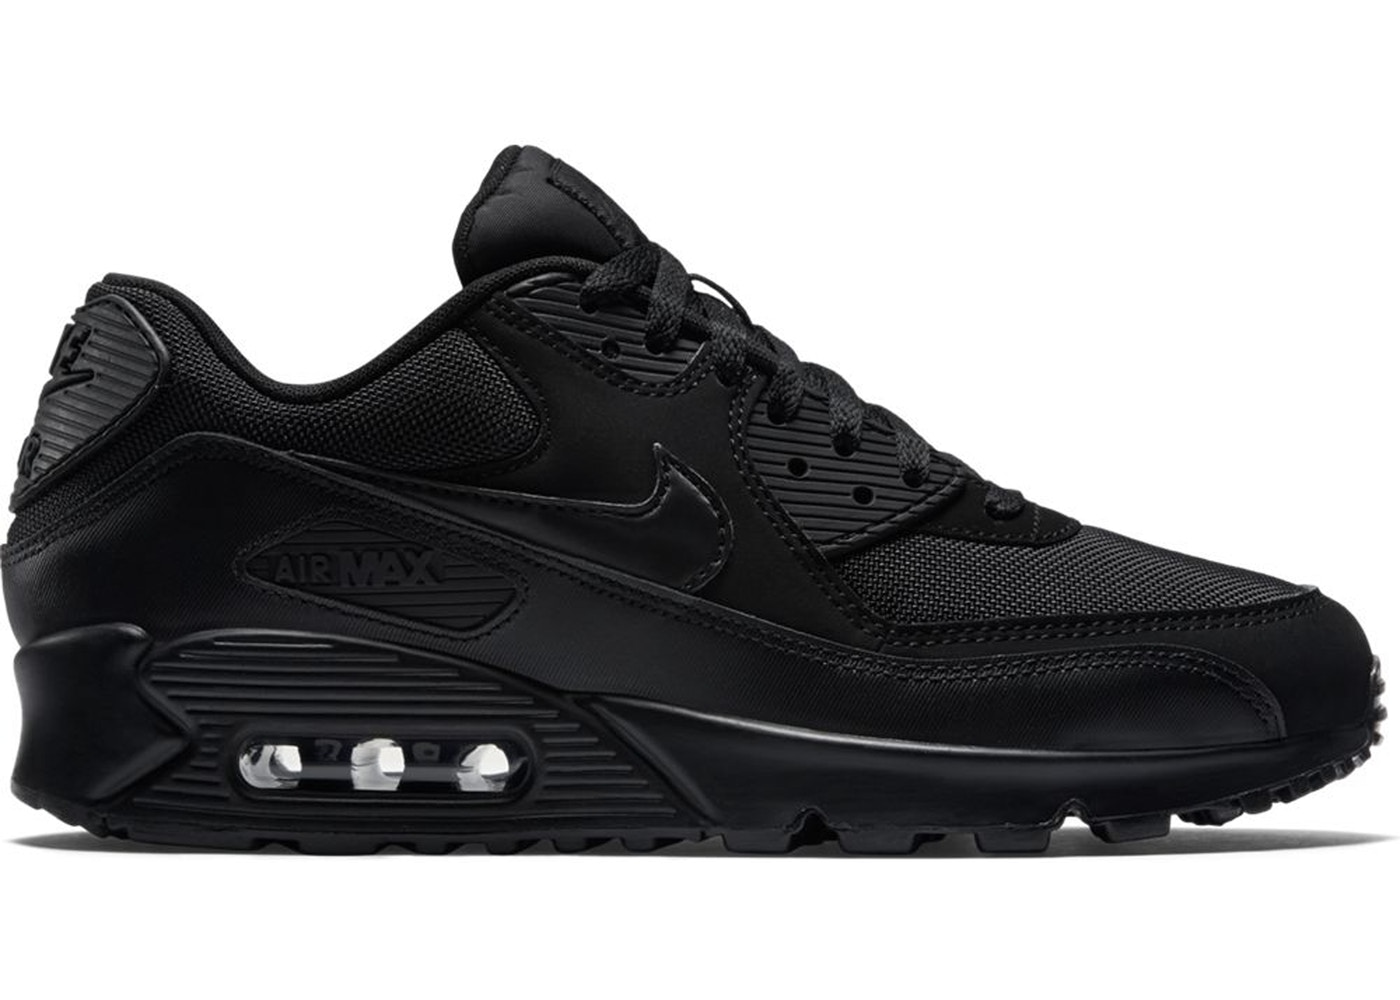 504e99c777 Air Max 90 Triple Black (2018) - 537384-090